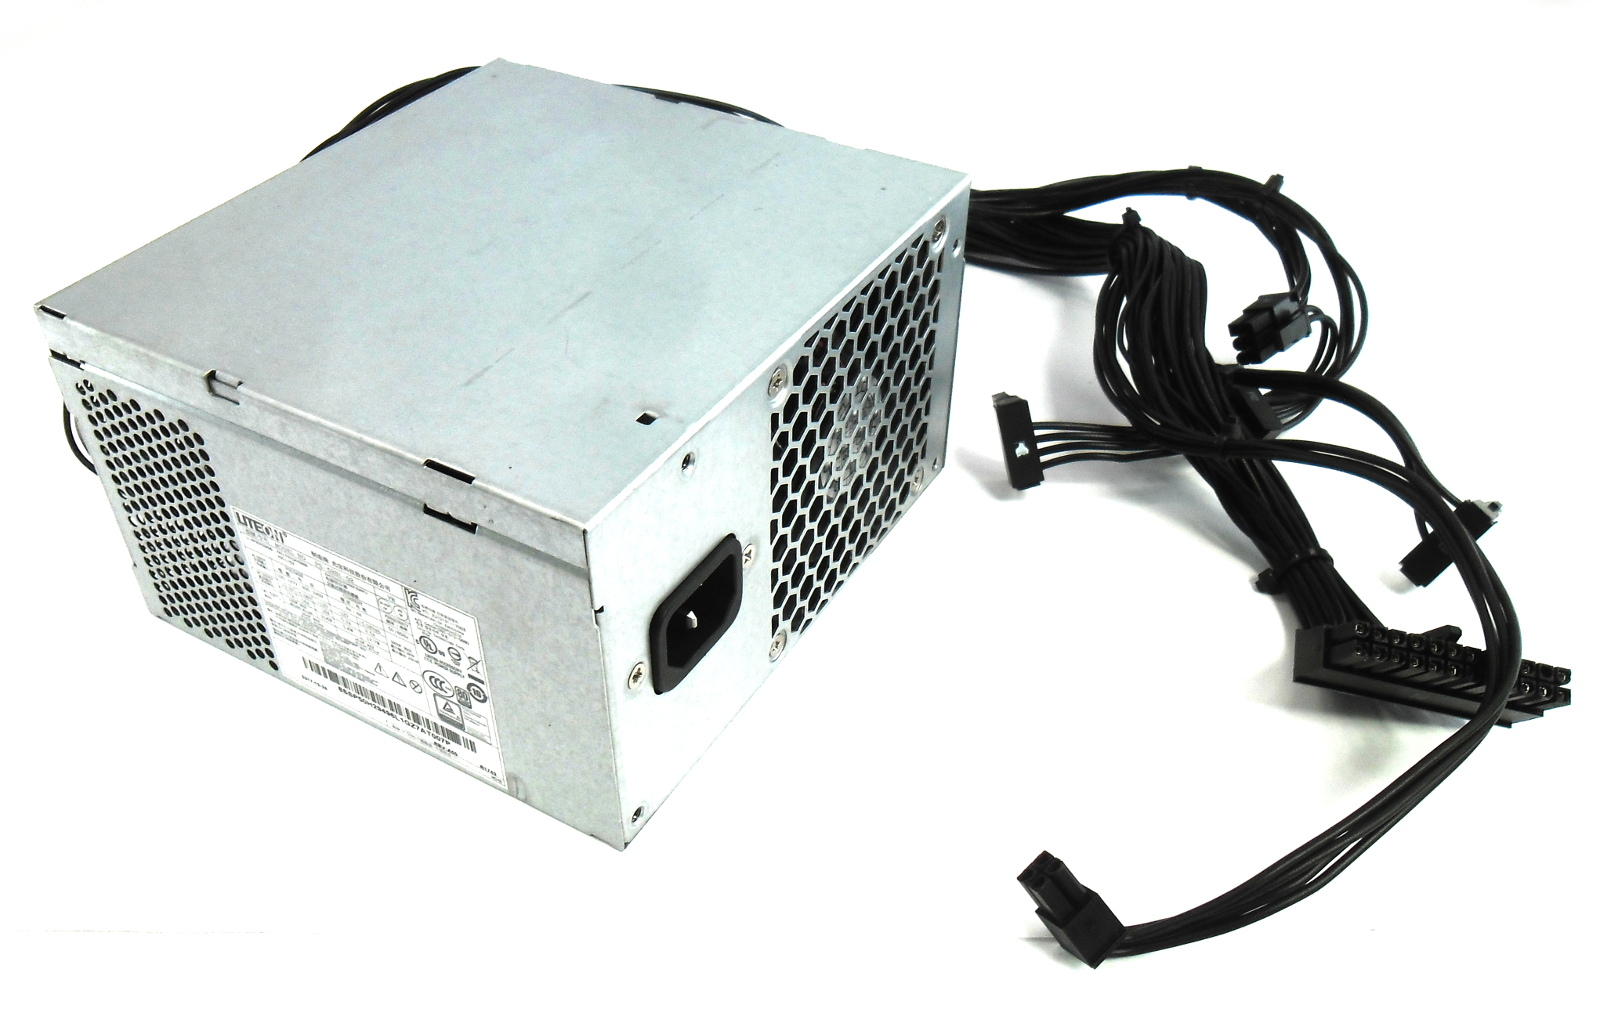 Lenovo 54Y8986 280W 24-Pin ATX Power Supply Liteon PS-5281-02 VB f/ Legion PC